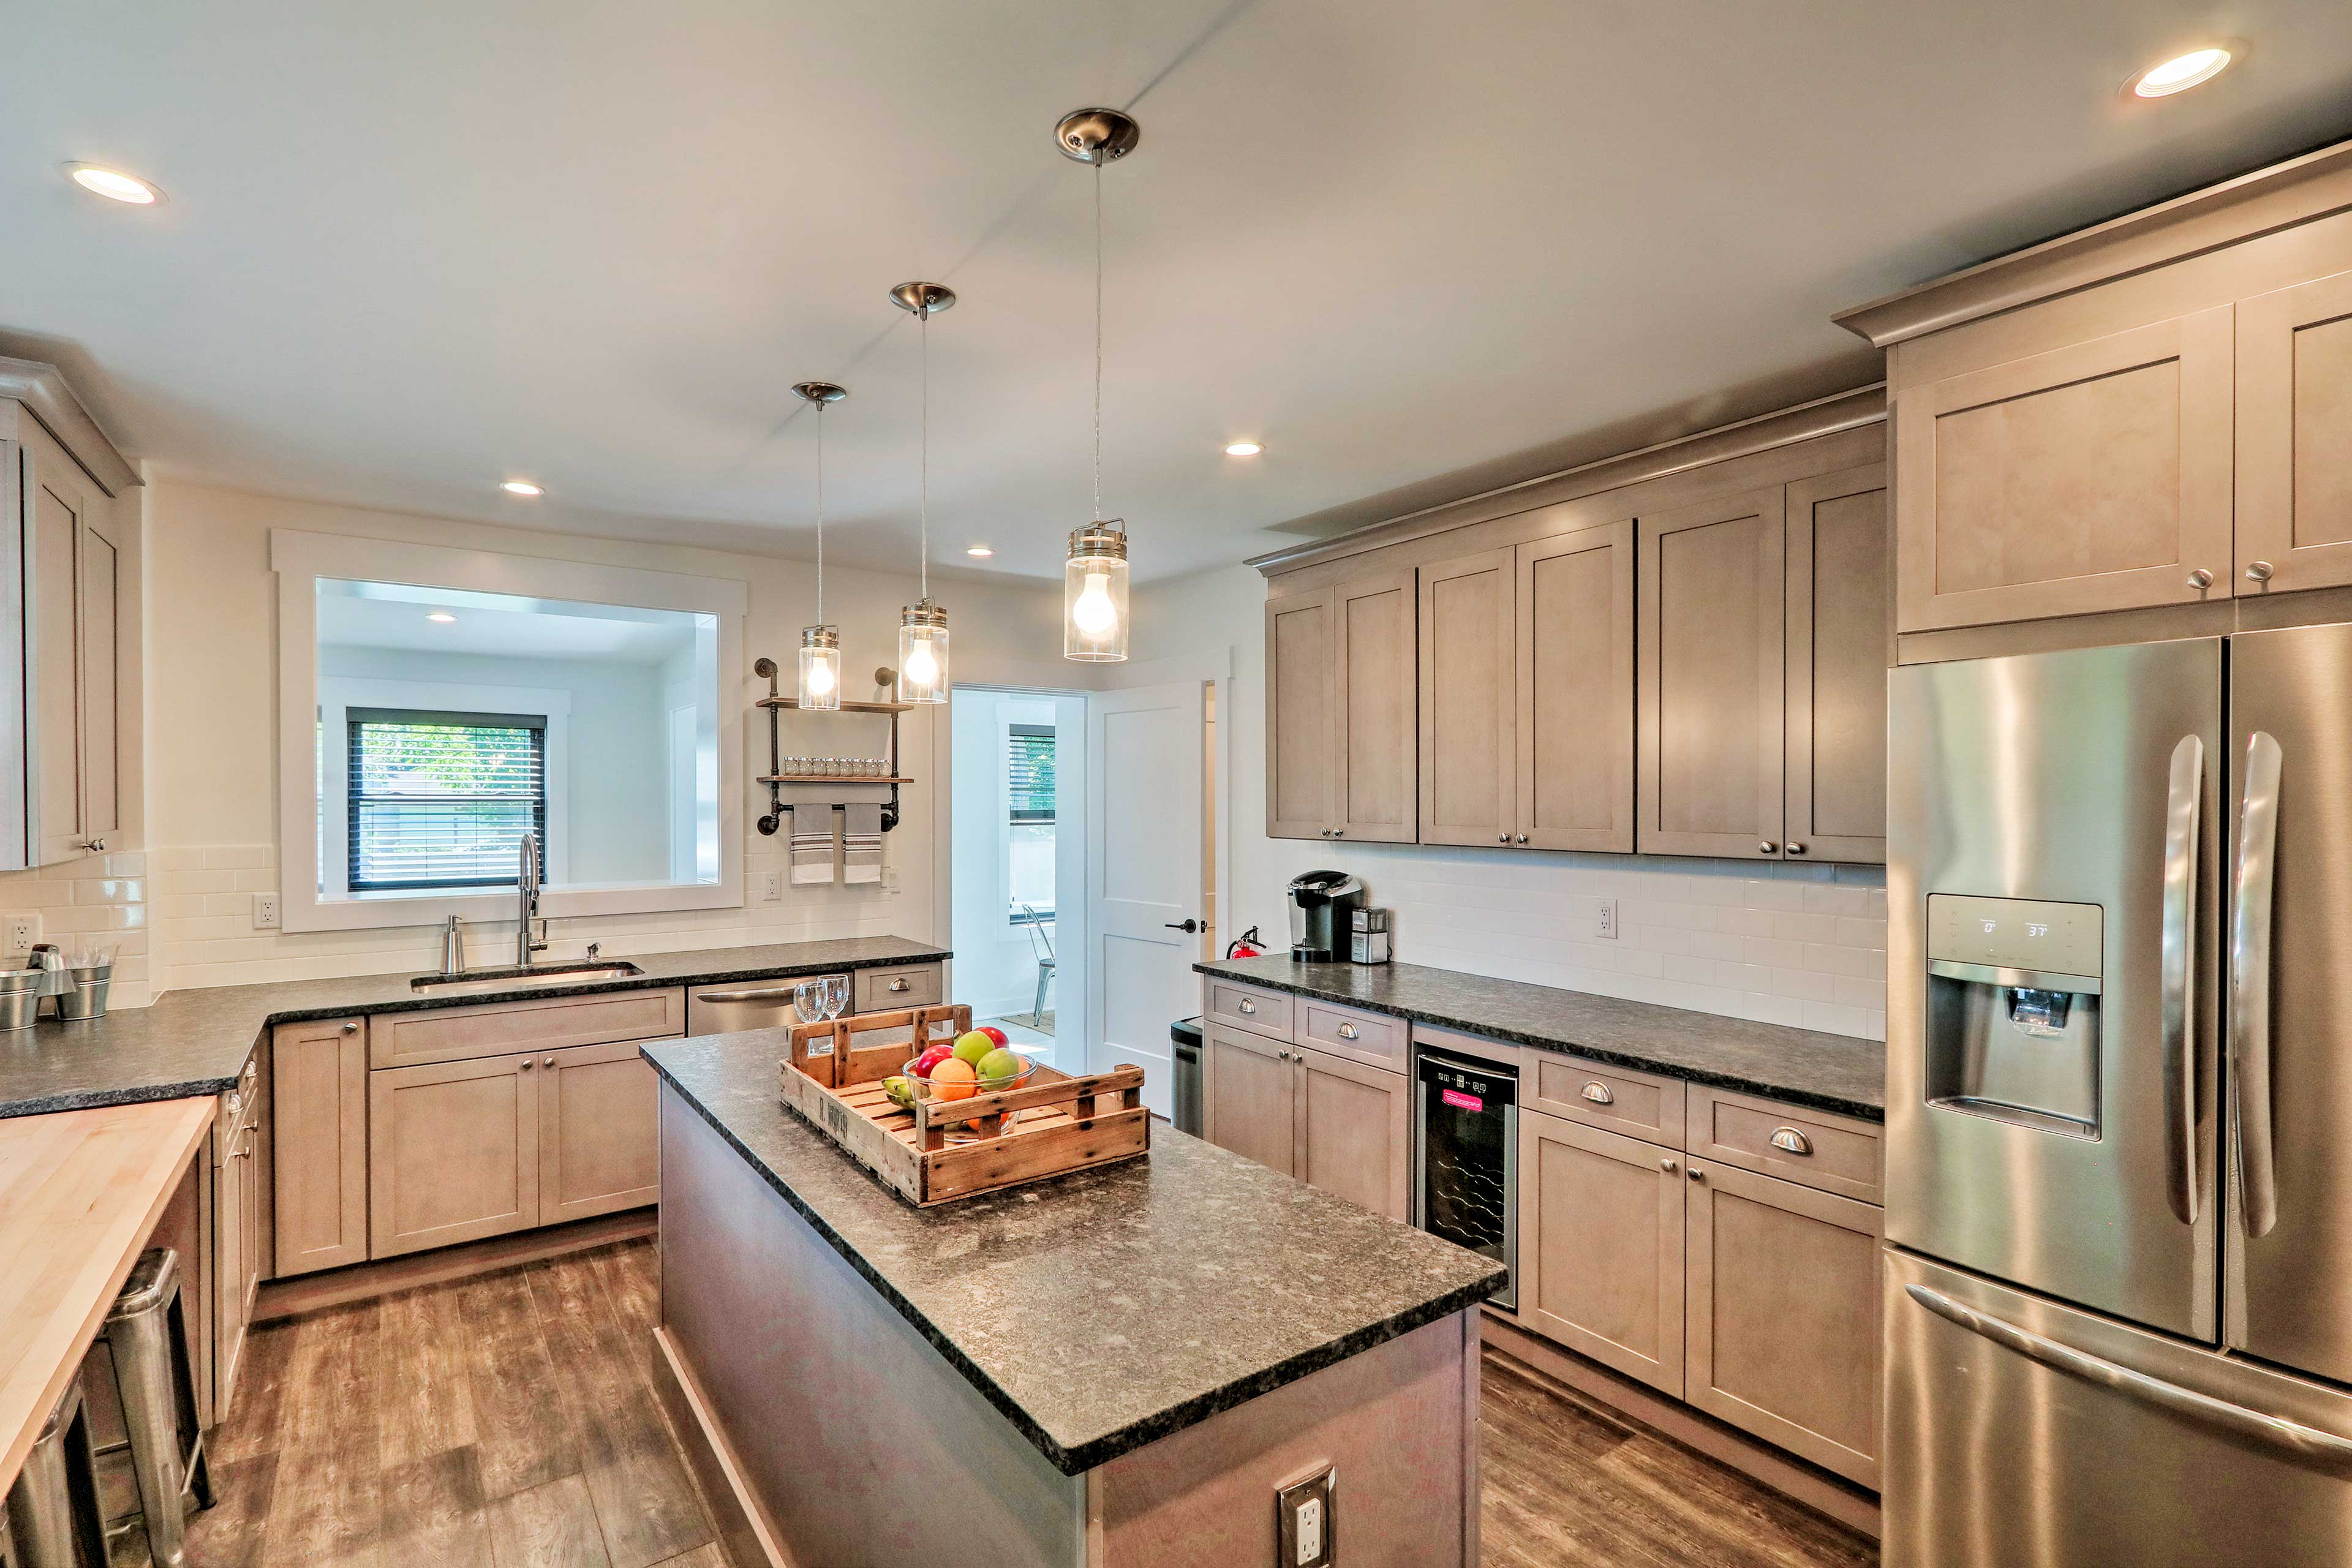 The full kitchen is a chef's dream!